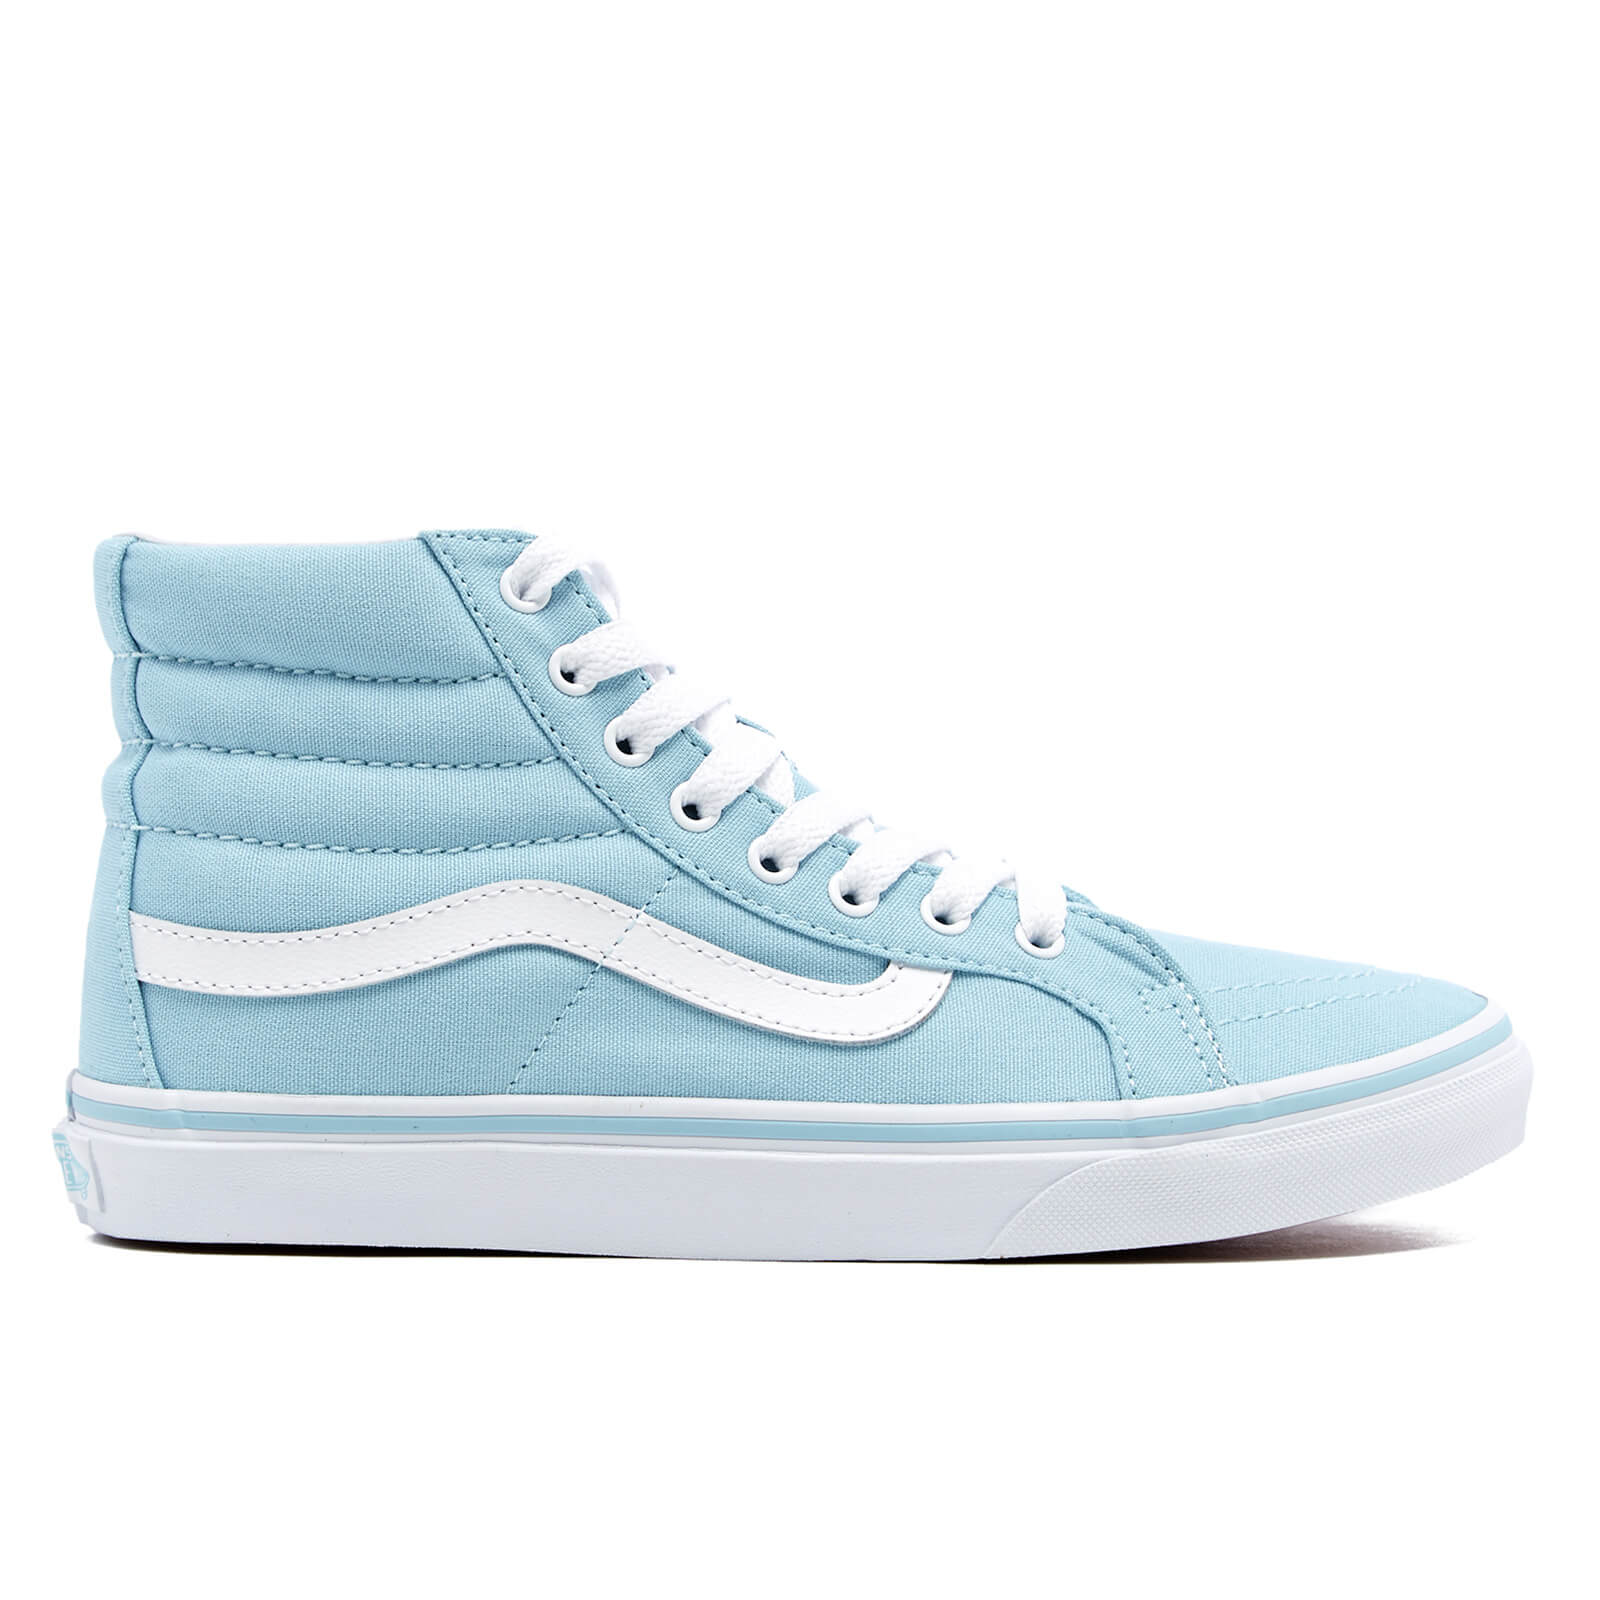 c9bb1d5a13 Vans Women s Sk8-Hi Slim Hi-Top Trainers - Crystal Blue True White - Free  UK Delivery over £50